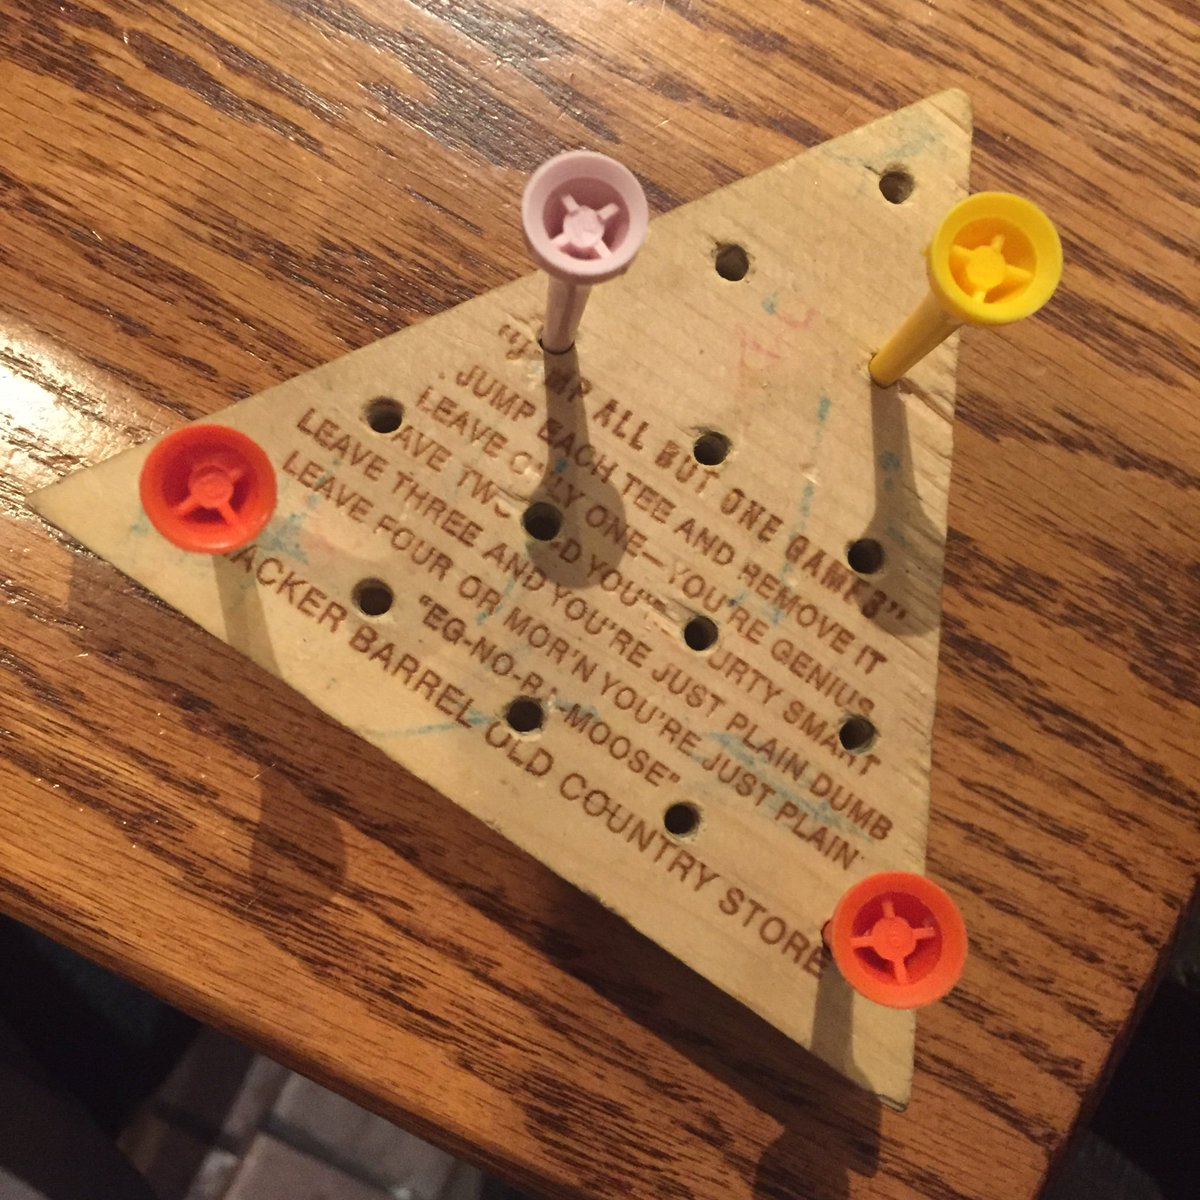 Autar Kaw On Twitter The Game Crackerbarrel Deems Me To Be Eg No Random Number Generator Based Though It Took A Few Hours Write Program Even Had Student And I Graphical Version Of Using